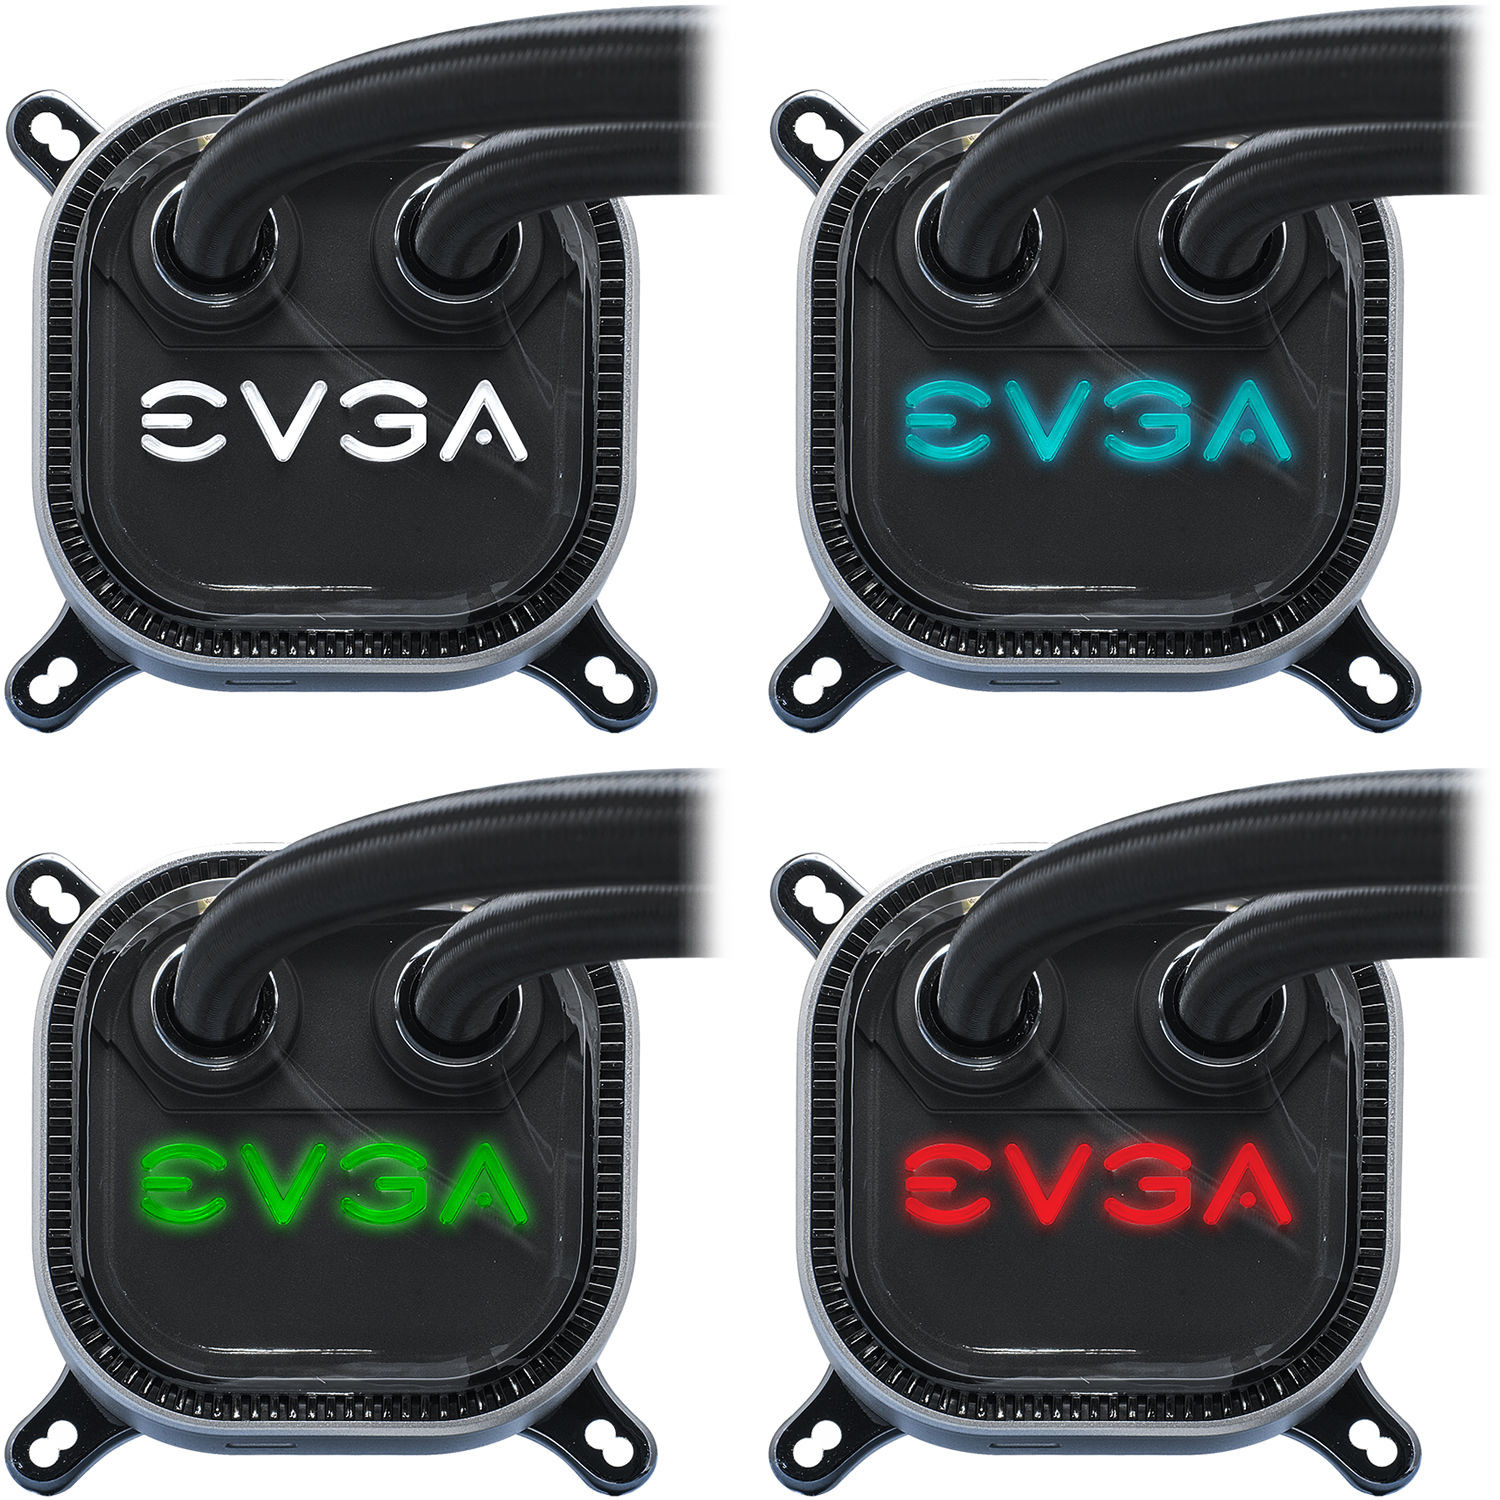 Водяное охлаждение EVGA CLC 280mm All-In-One RGB LED CPU Liquid Cooler 400-HY-CL28-V1, 2x FX13 140mm...